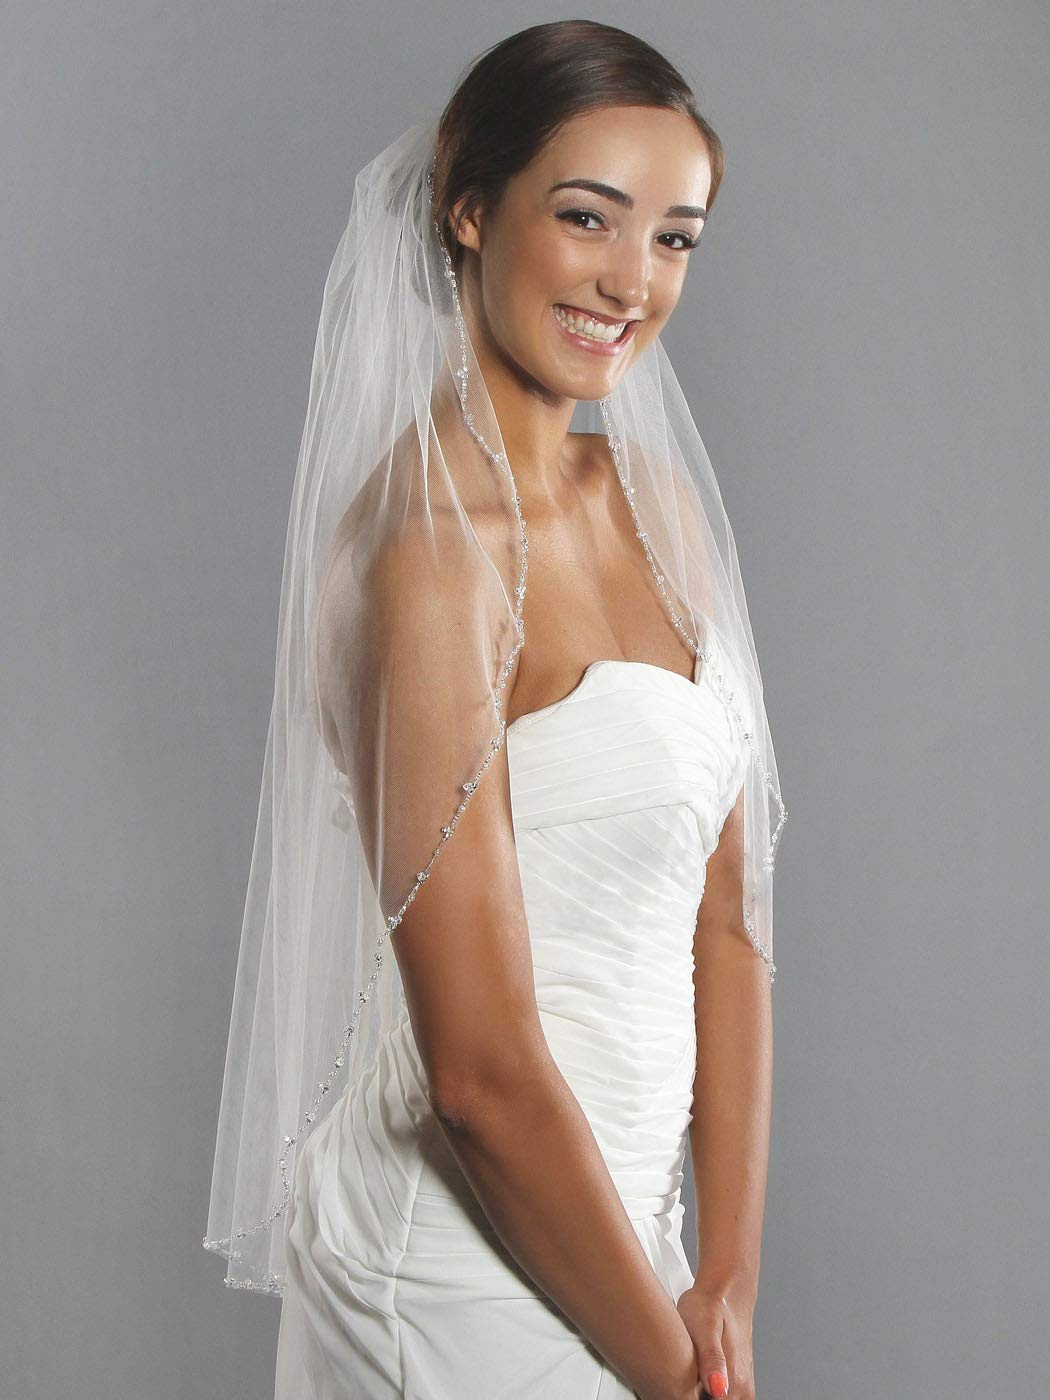 Barogirl Wedding Veil White with Rhinestones 1 Tier Beaded Edge Bridal Veil Fingertip Length with Comb for Brides (White) by Barogirl